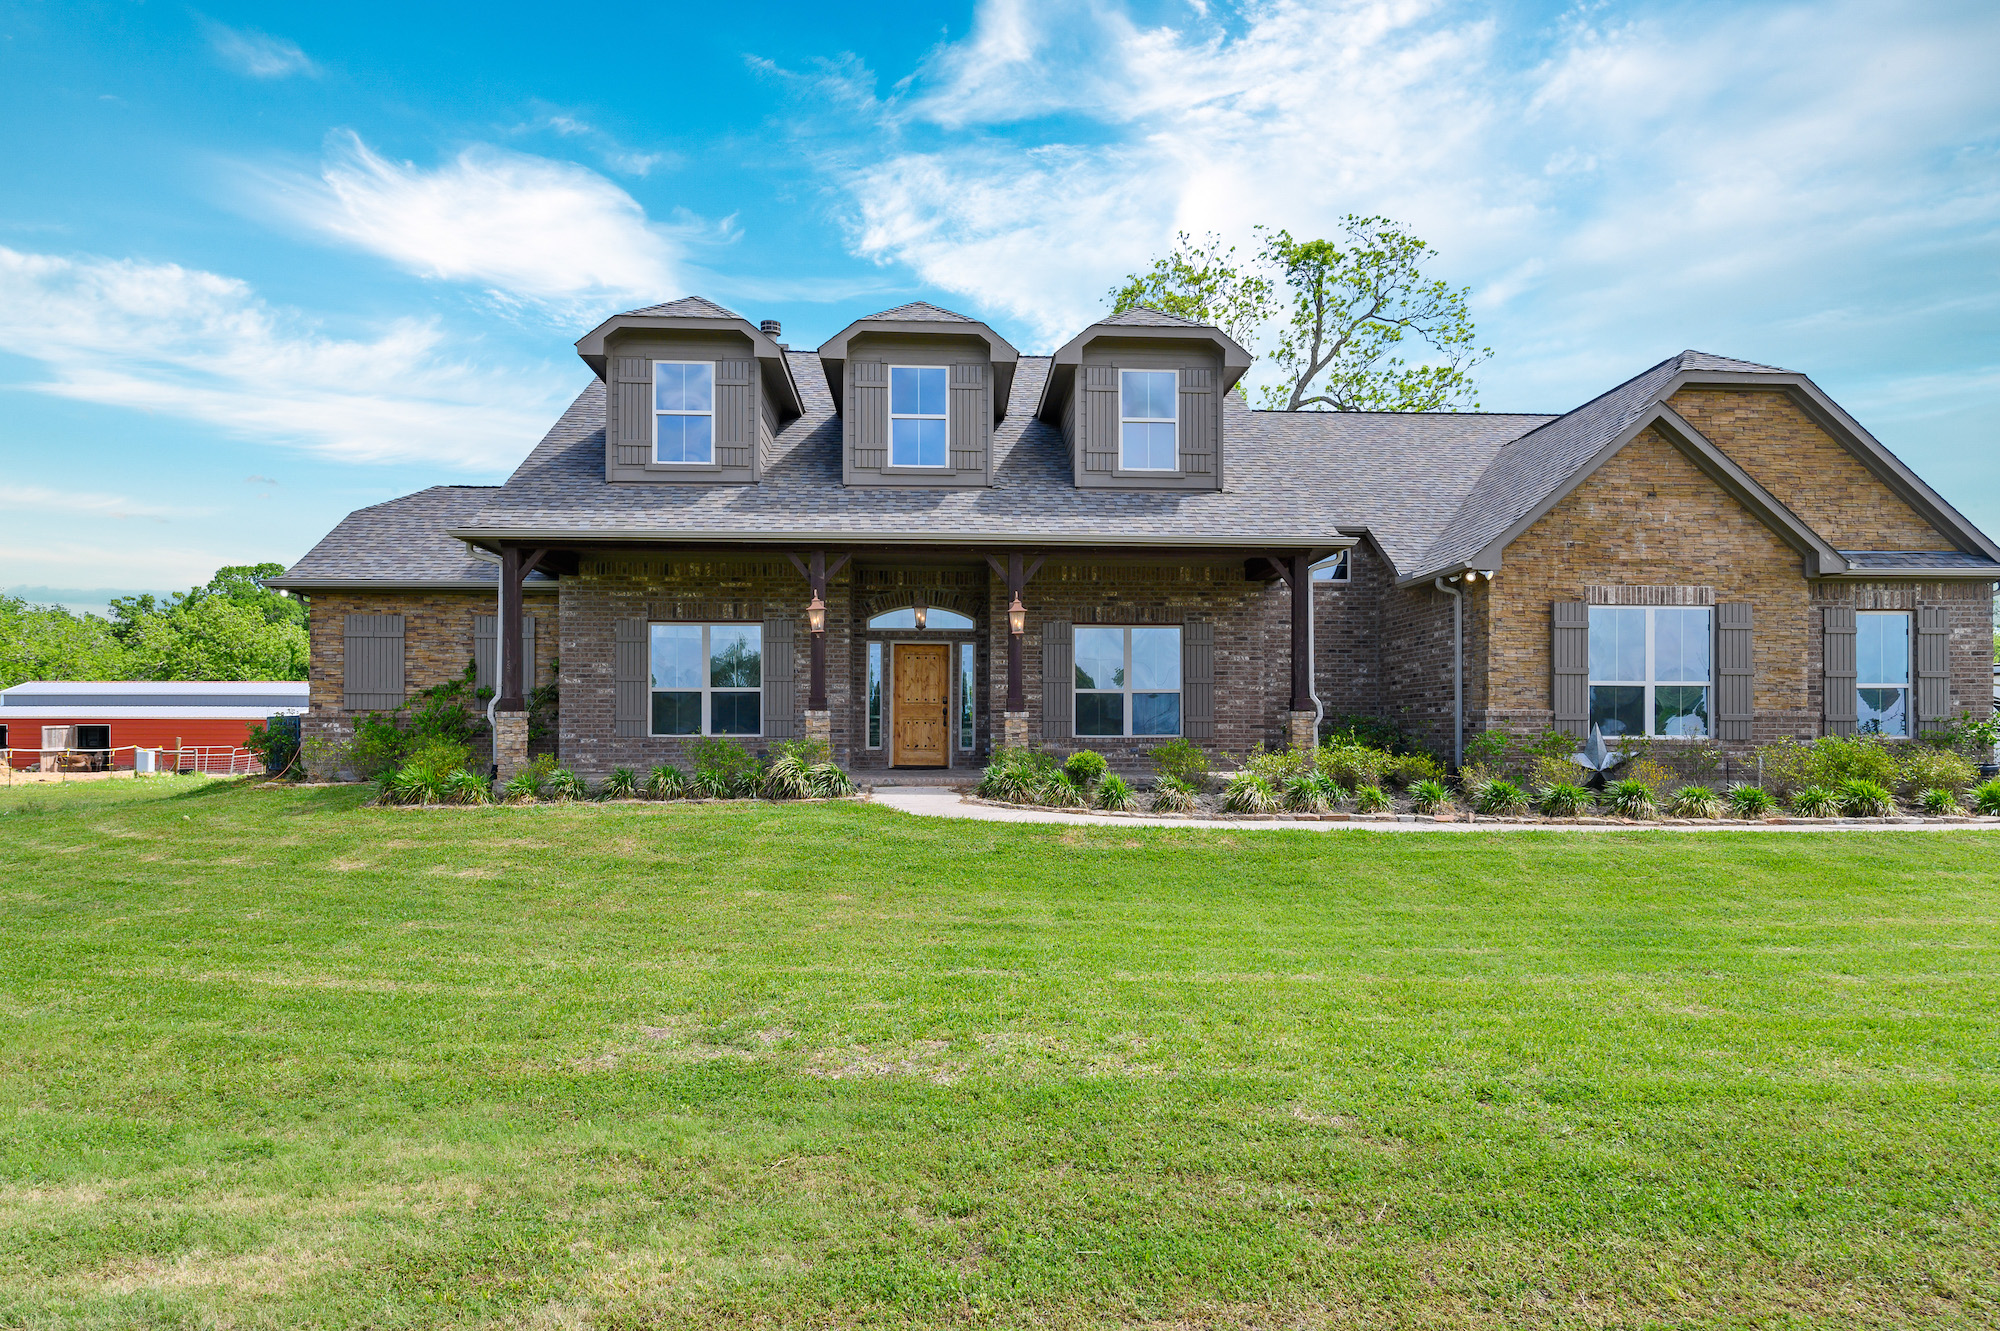 Custom Country Home with Acreage in Sealy - Image 39 of 46